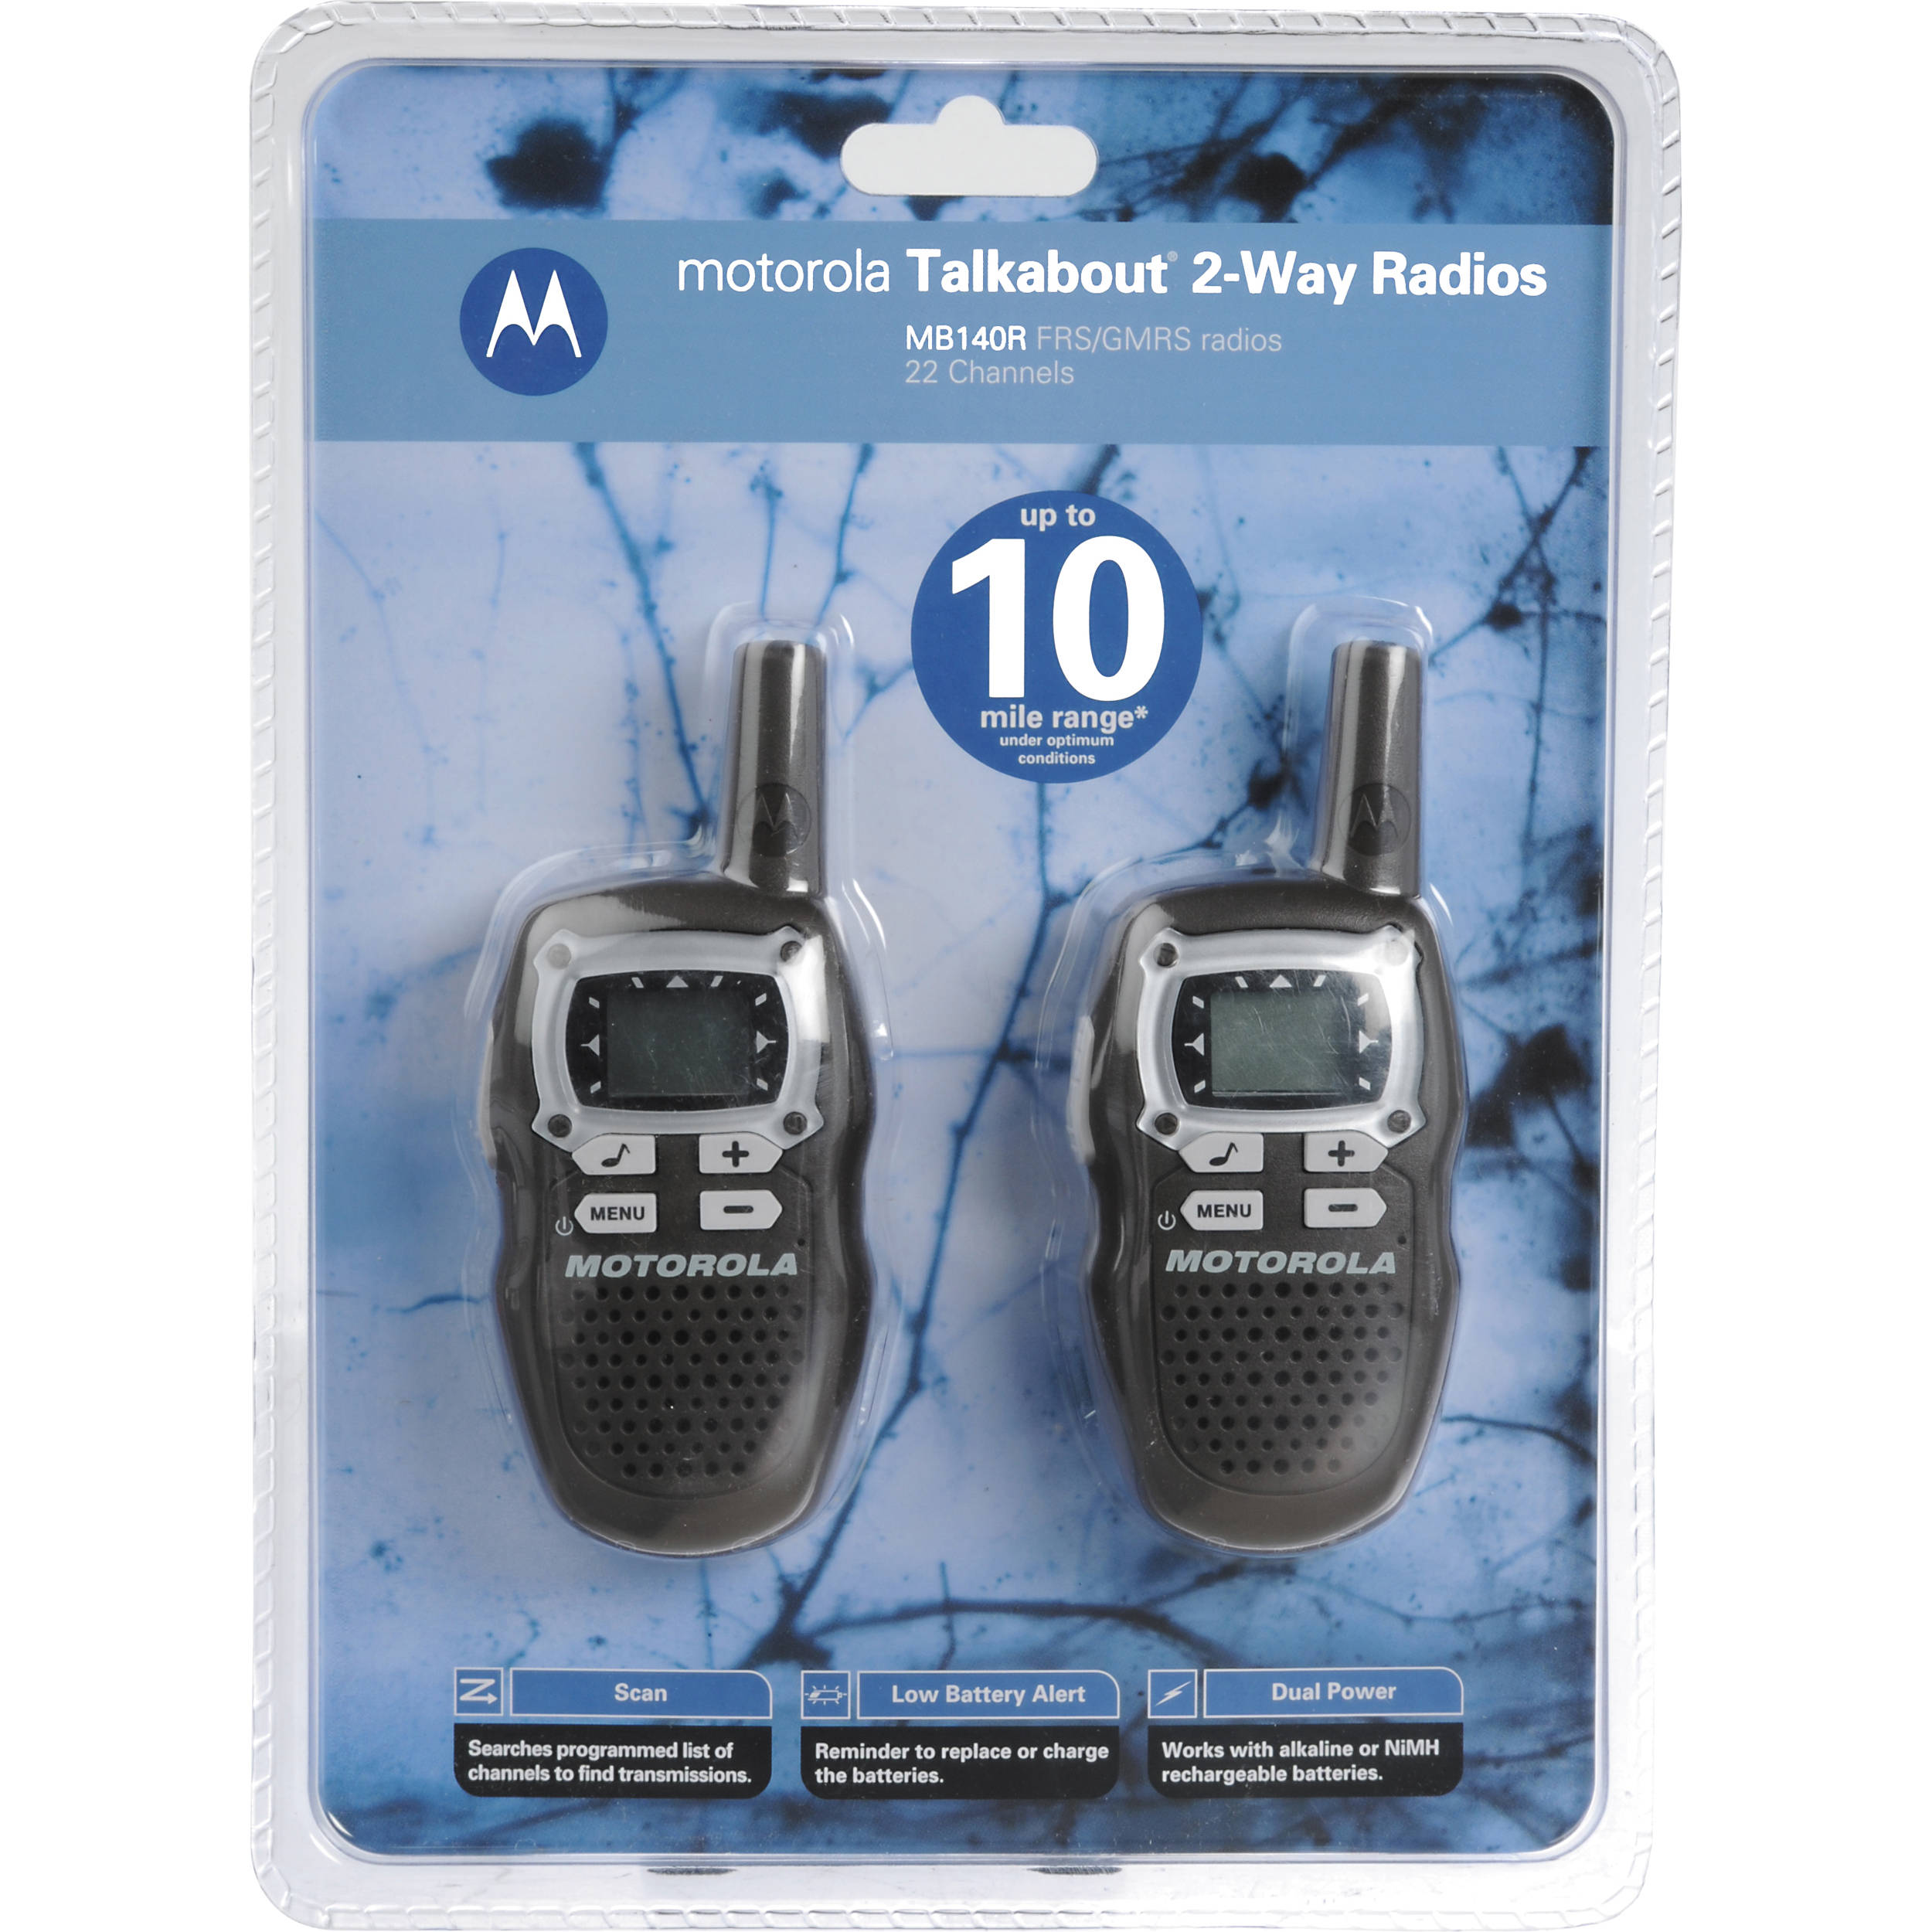 motorola communication Motorola sl300 the mototrbo sl300 provides reliable push-to-talk communication for the mobile, everyday user in an ultra-slim and rugged profile.